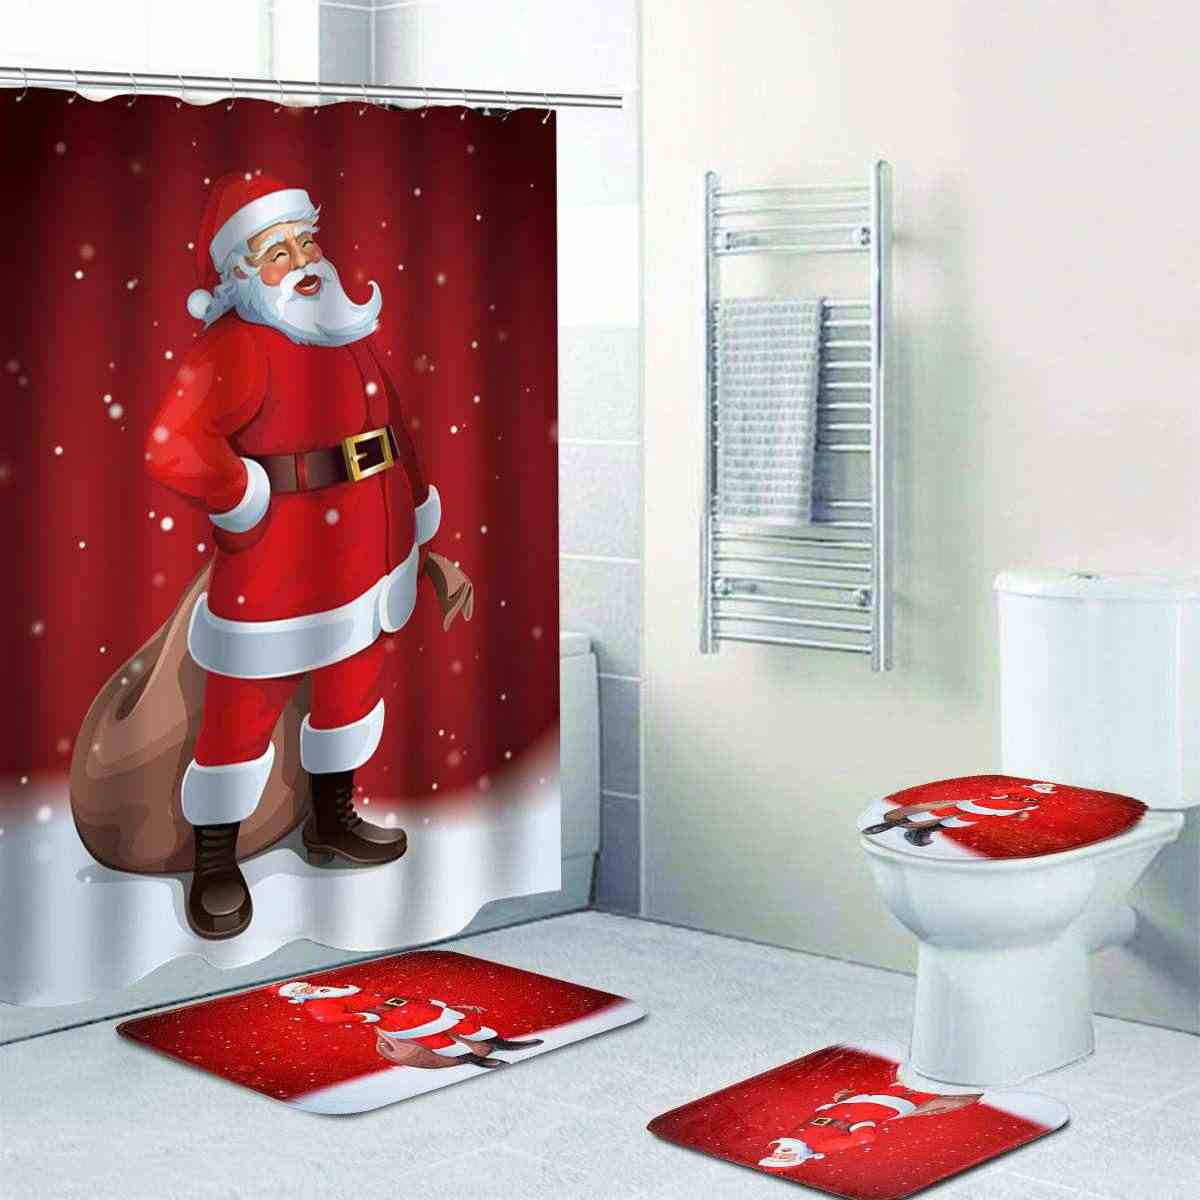 Detail Feedback Questions About Bathroom Accessories Christmas Toilet Seat Cover Rug Set Printed Santa Waterproof Bath Shower Curtain Decorations